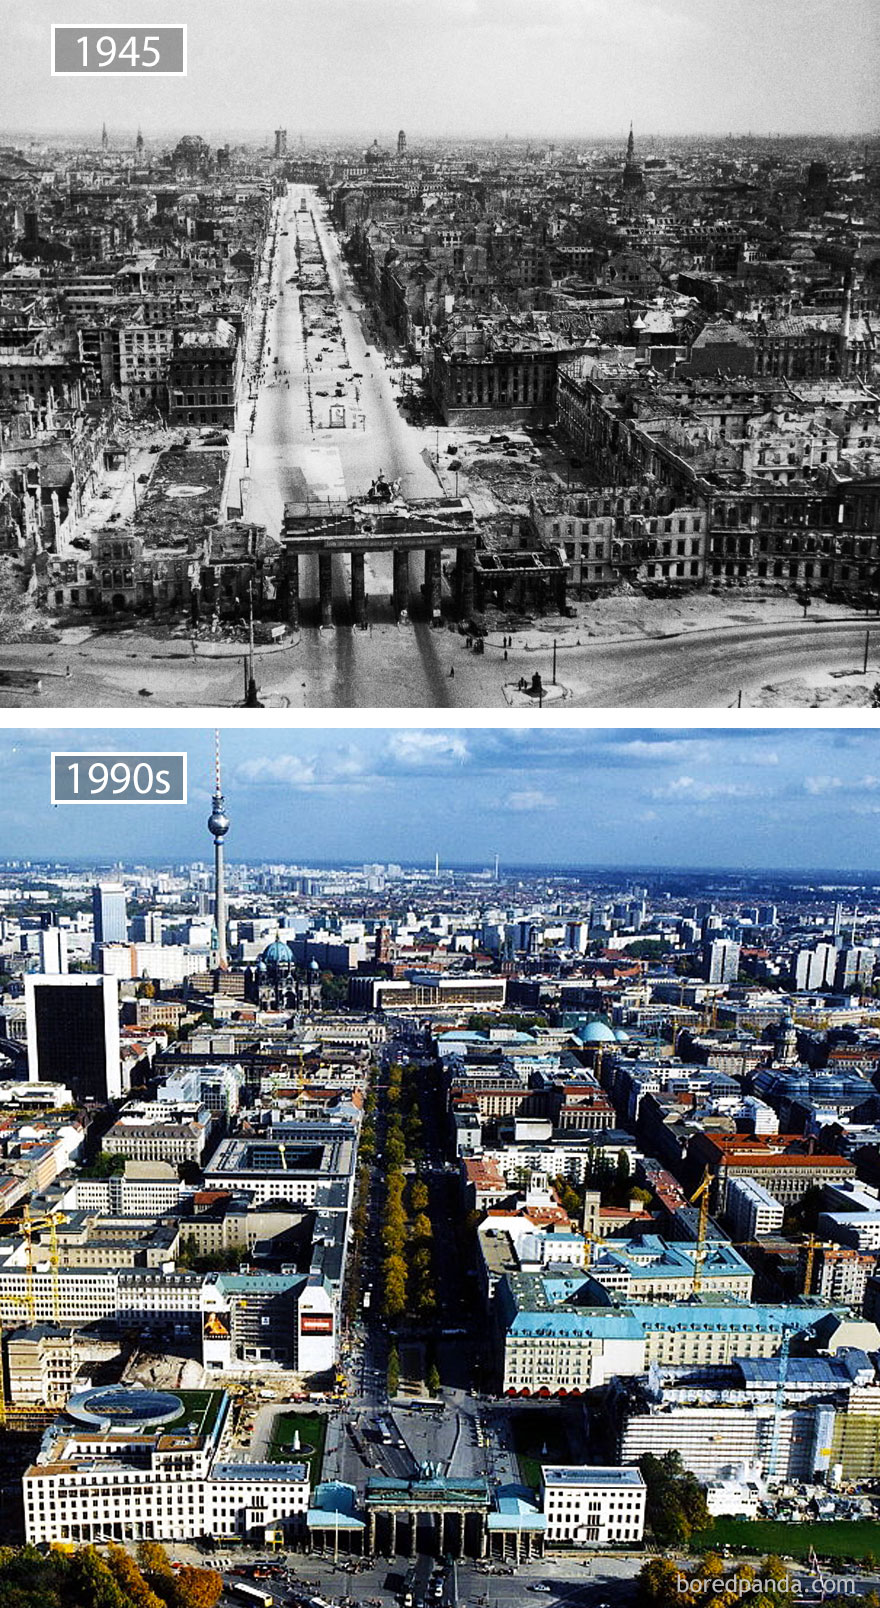 Berlin, Germany - 1945 And 1990s